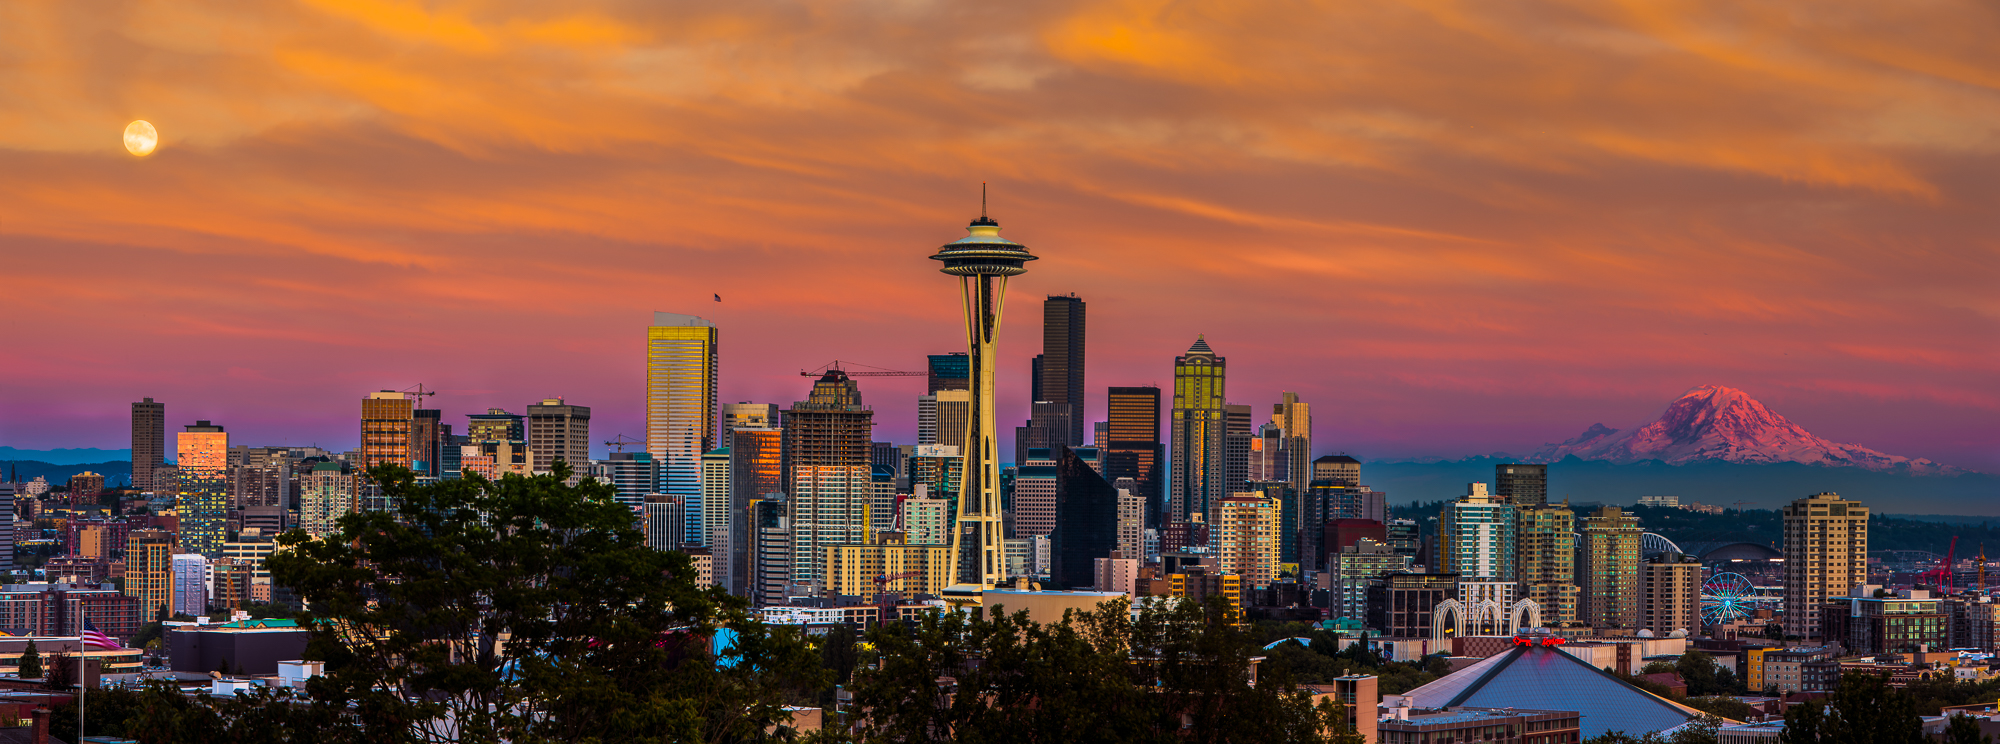 Golden Seattle - 2000x744